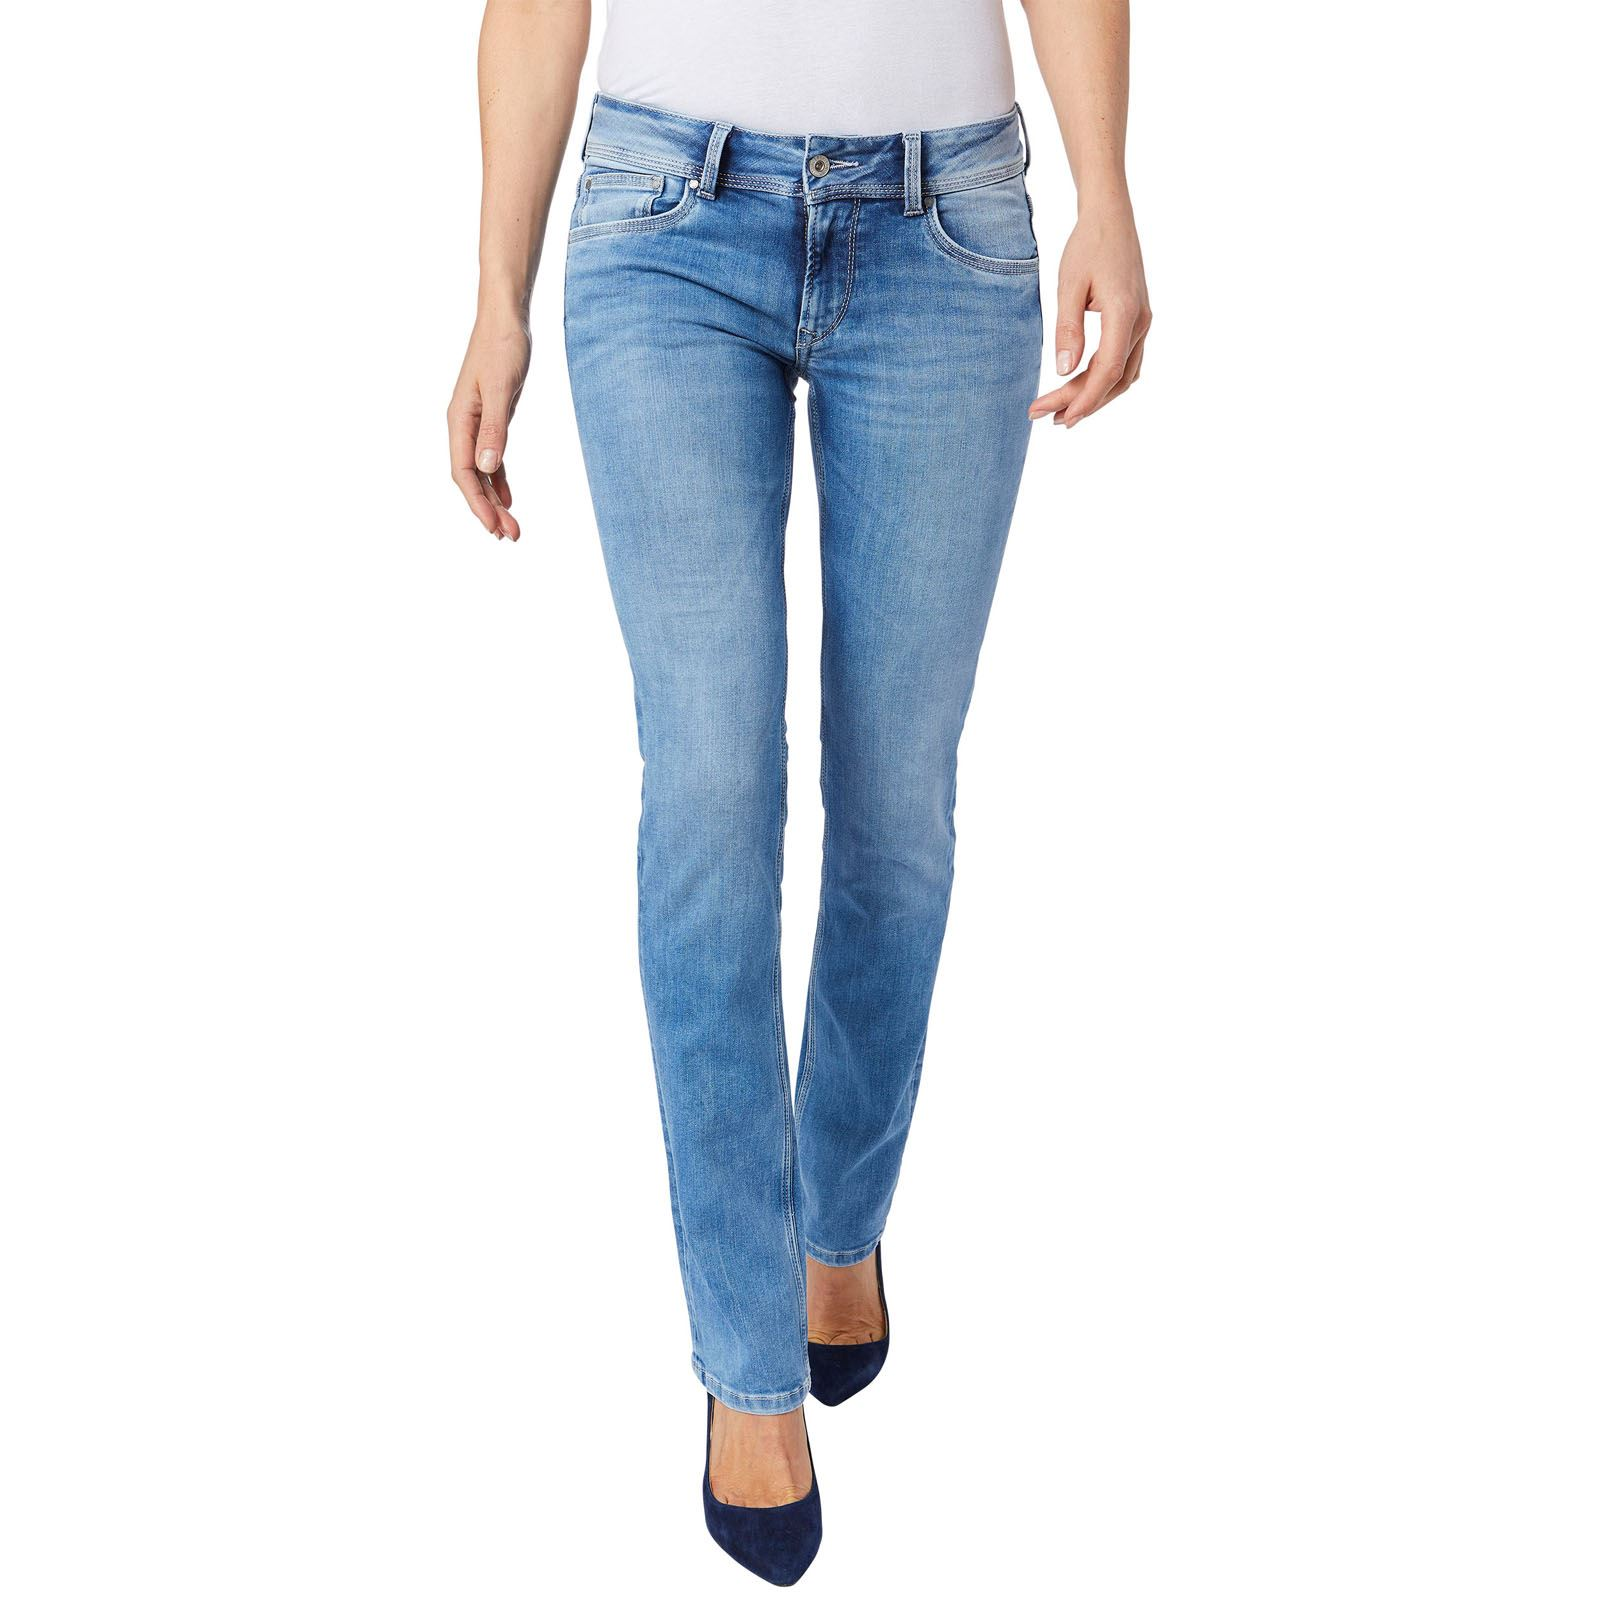 Pepe Jeans London Saturn - Jean slim - denim bleu